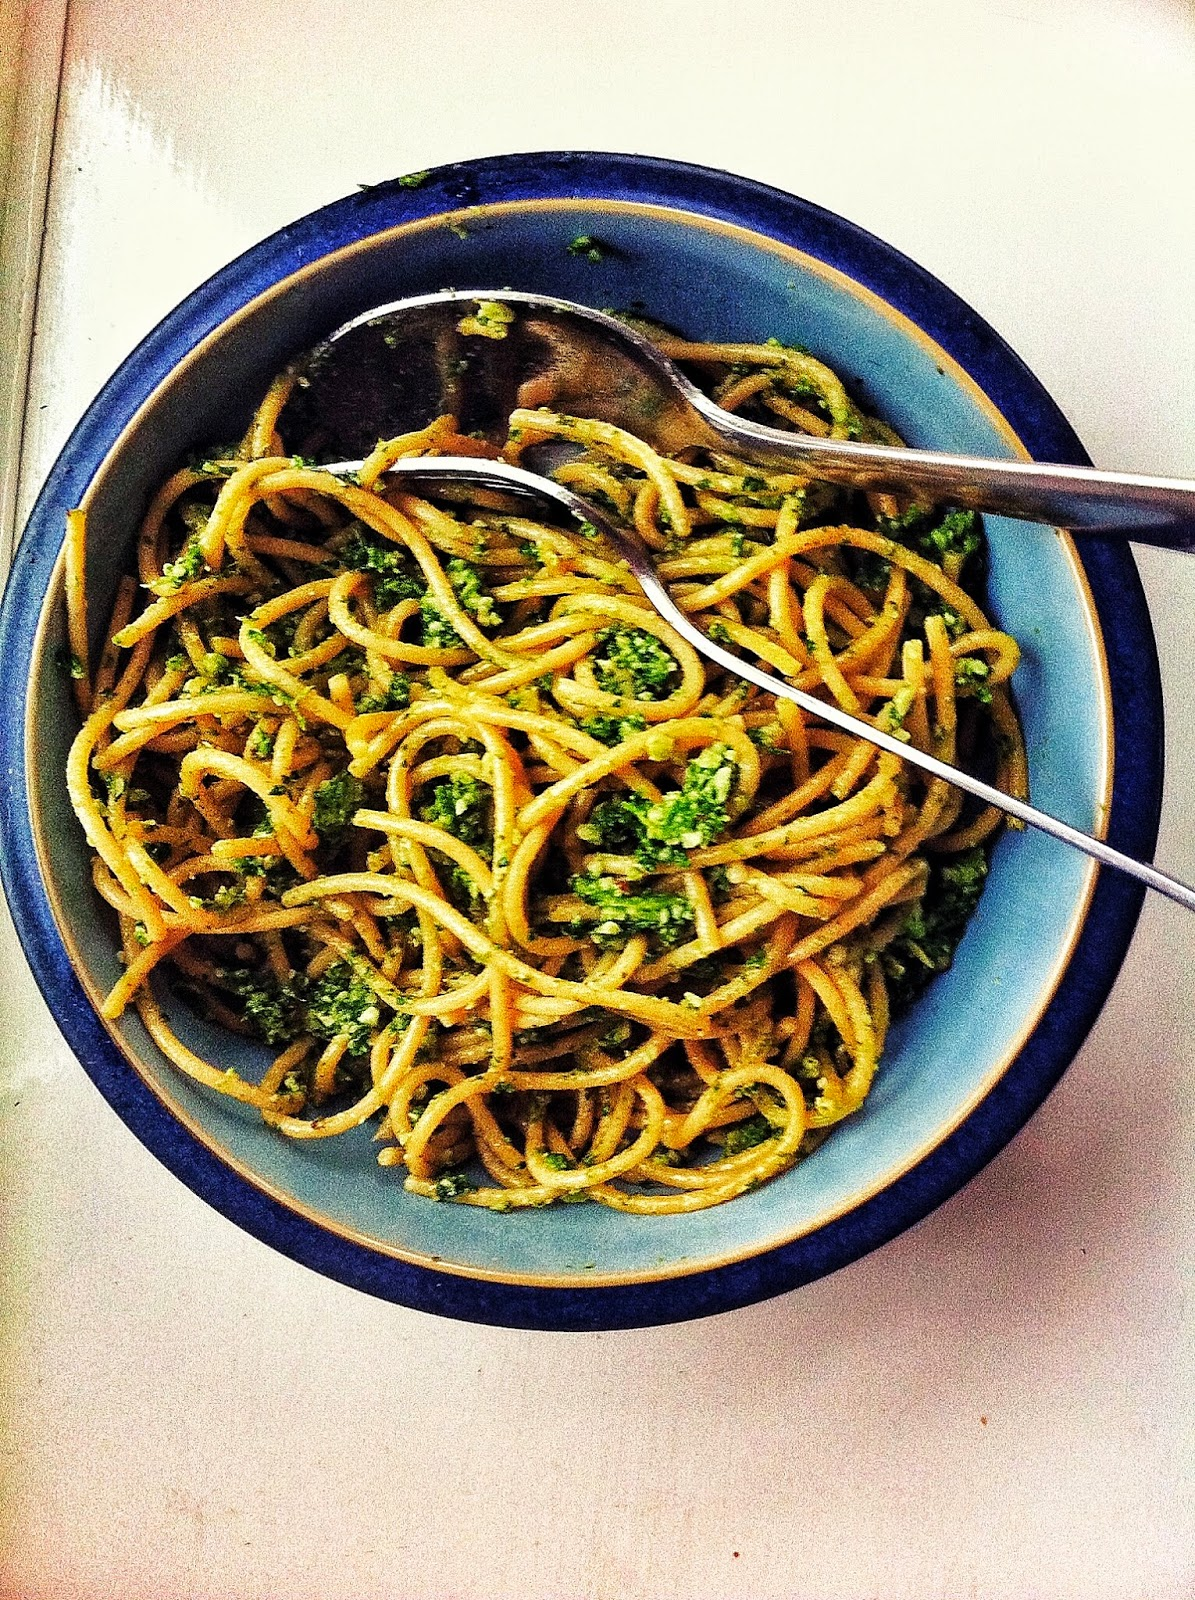 kale and brazil nut pesto with spaghetti